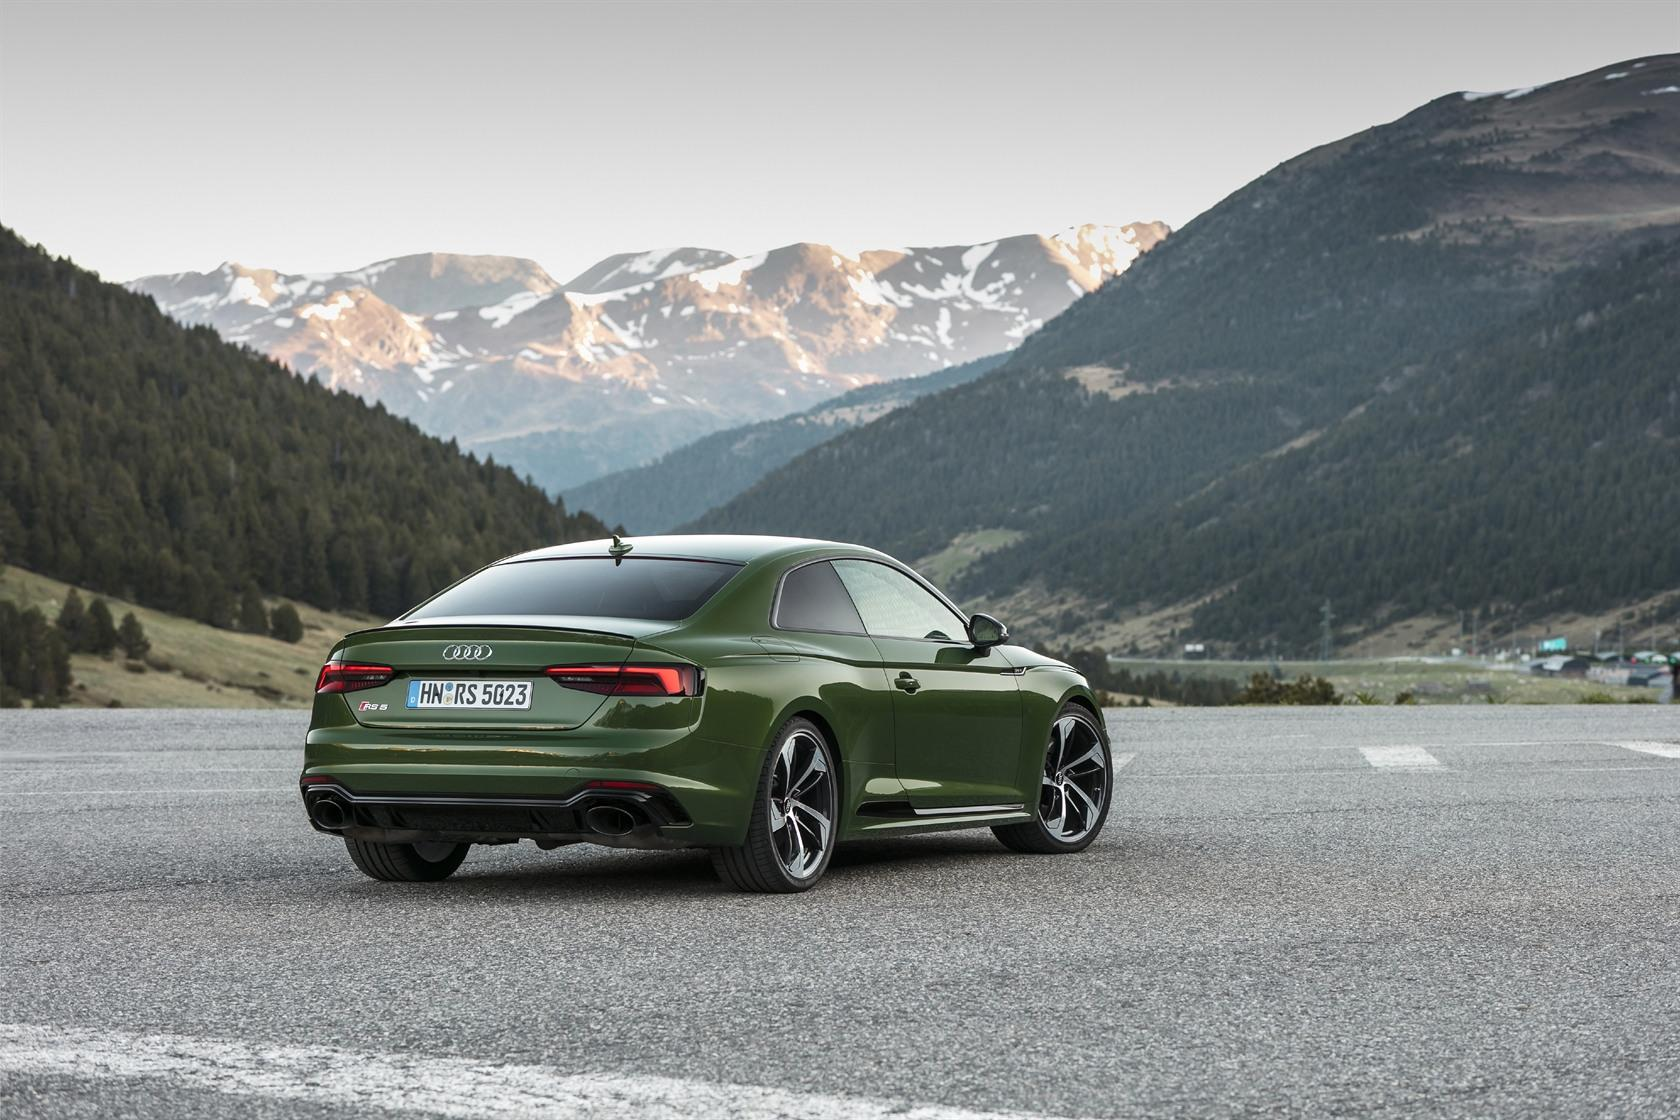 2018 Audi Sport RS 5 Coupe First-Drive Review: A go-anywhere grand